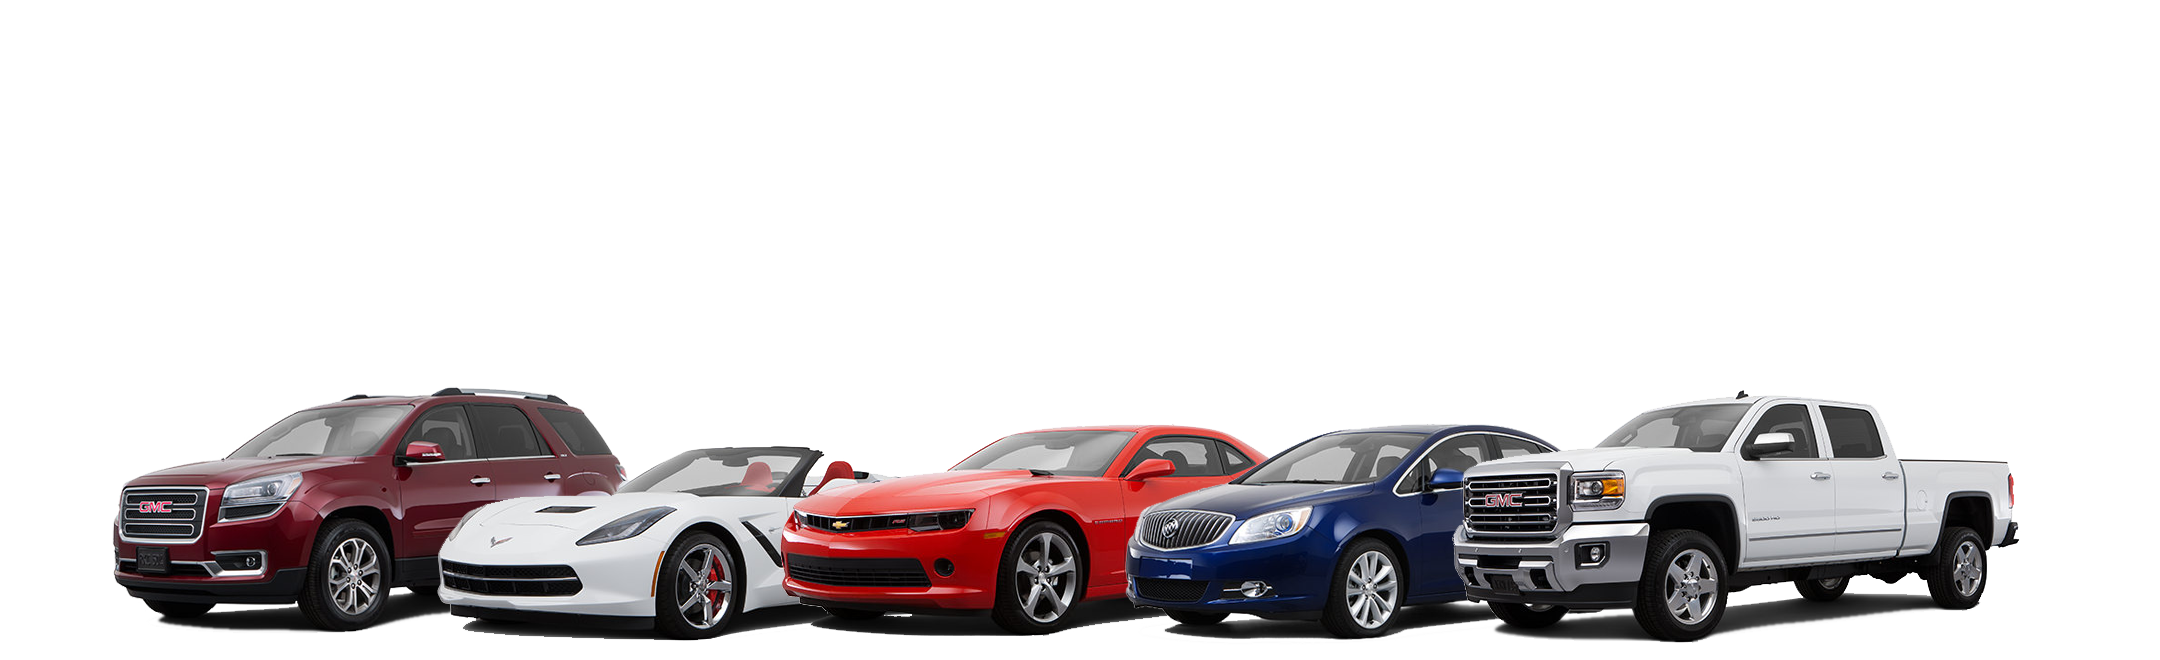 Cash for Cars Brisbane | Sell Unwanted Car or Truck for Quick Cash QLD